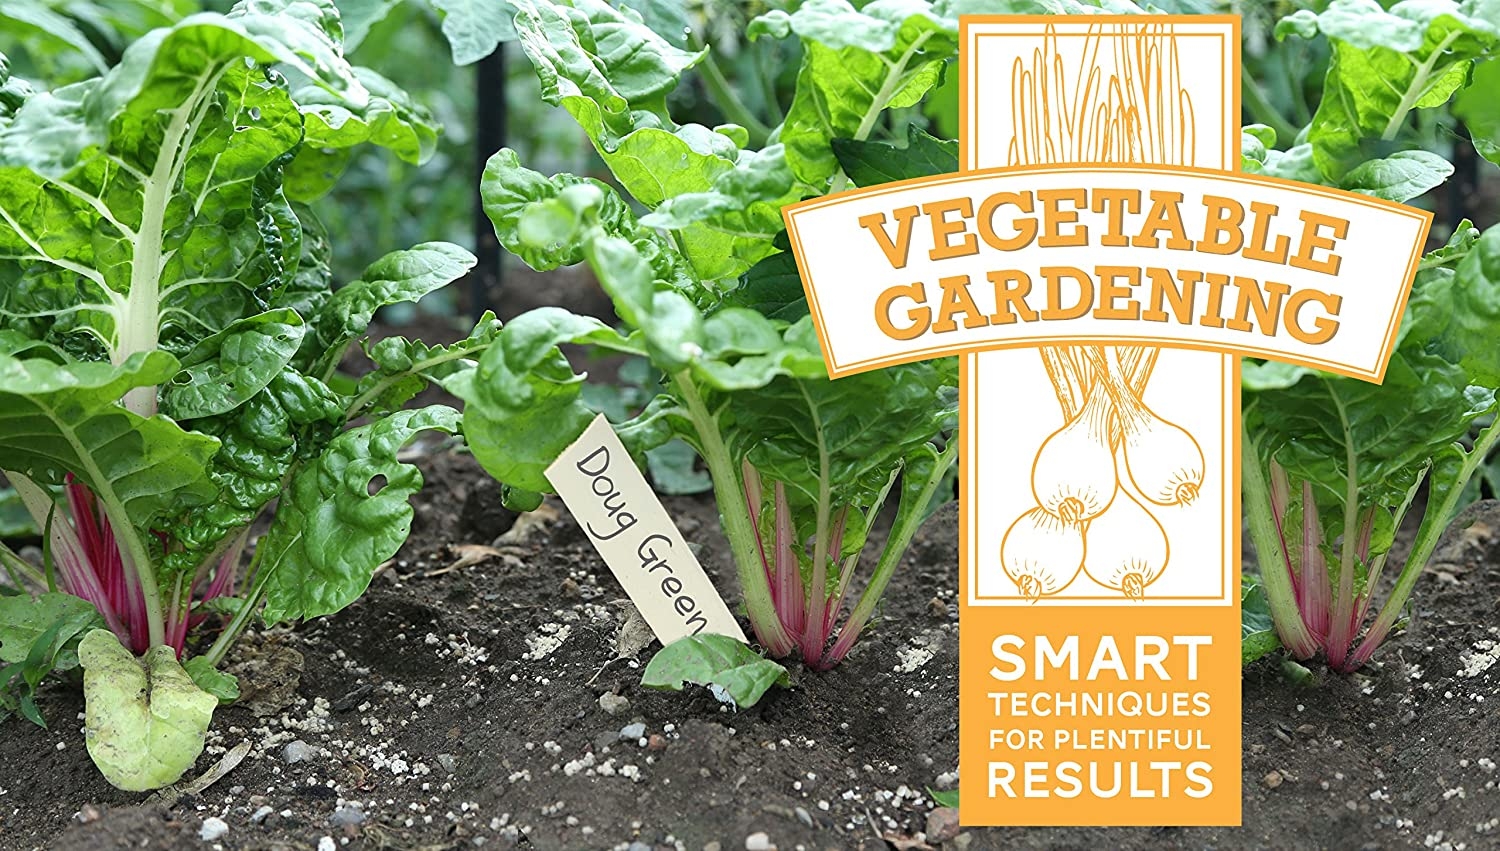 Vegetable Gardening: Smart Techniques for Plentiful Results